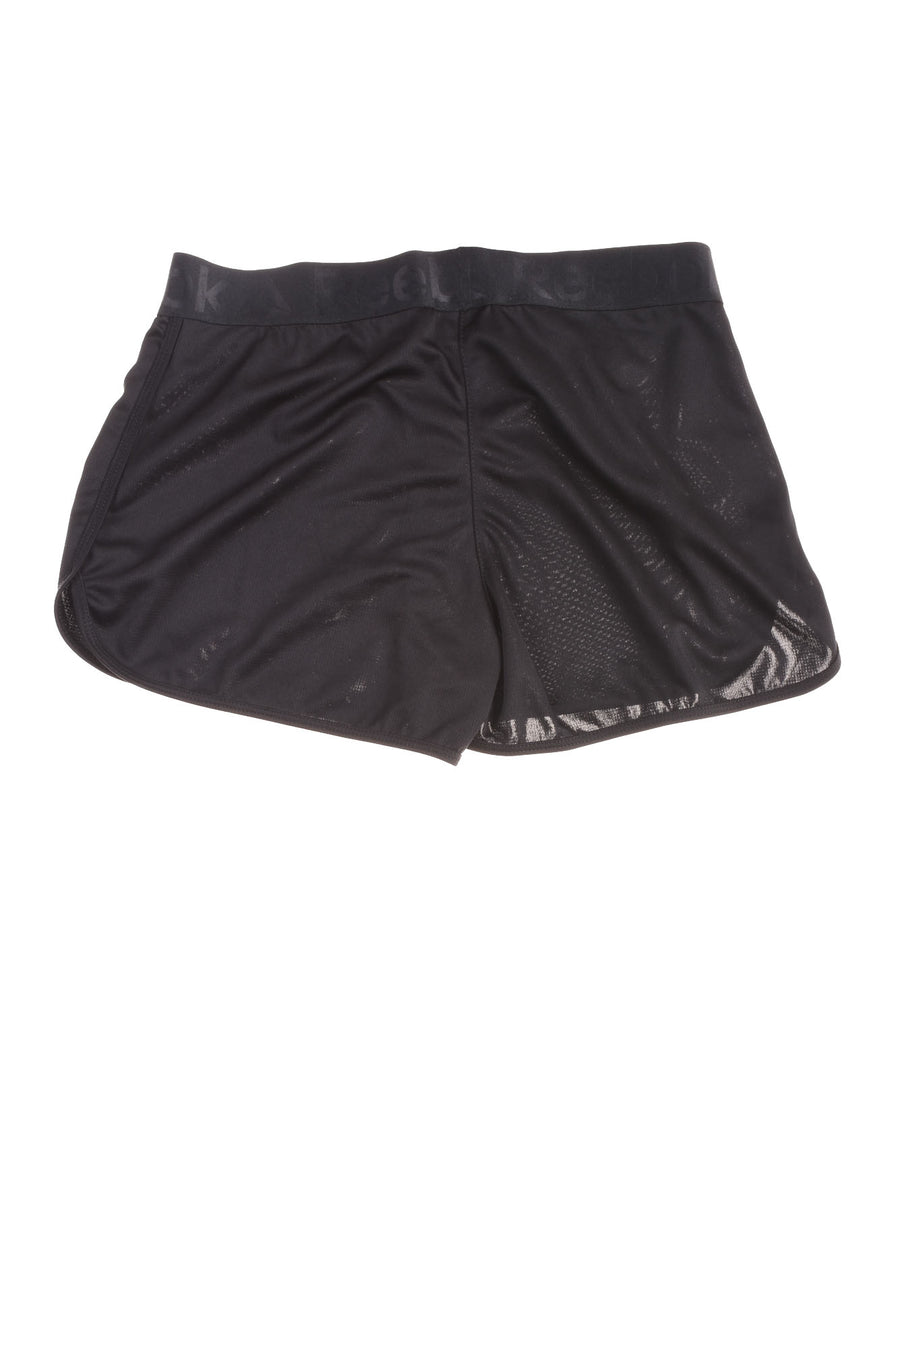 NEW Reebok Women's Shorts X-Small Black